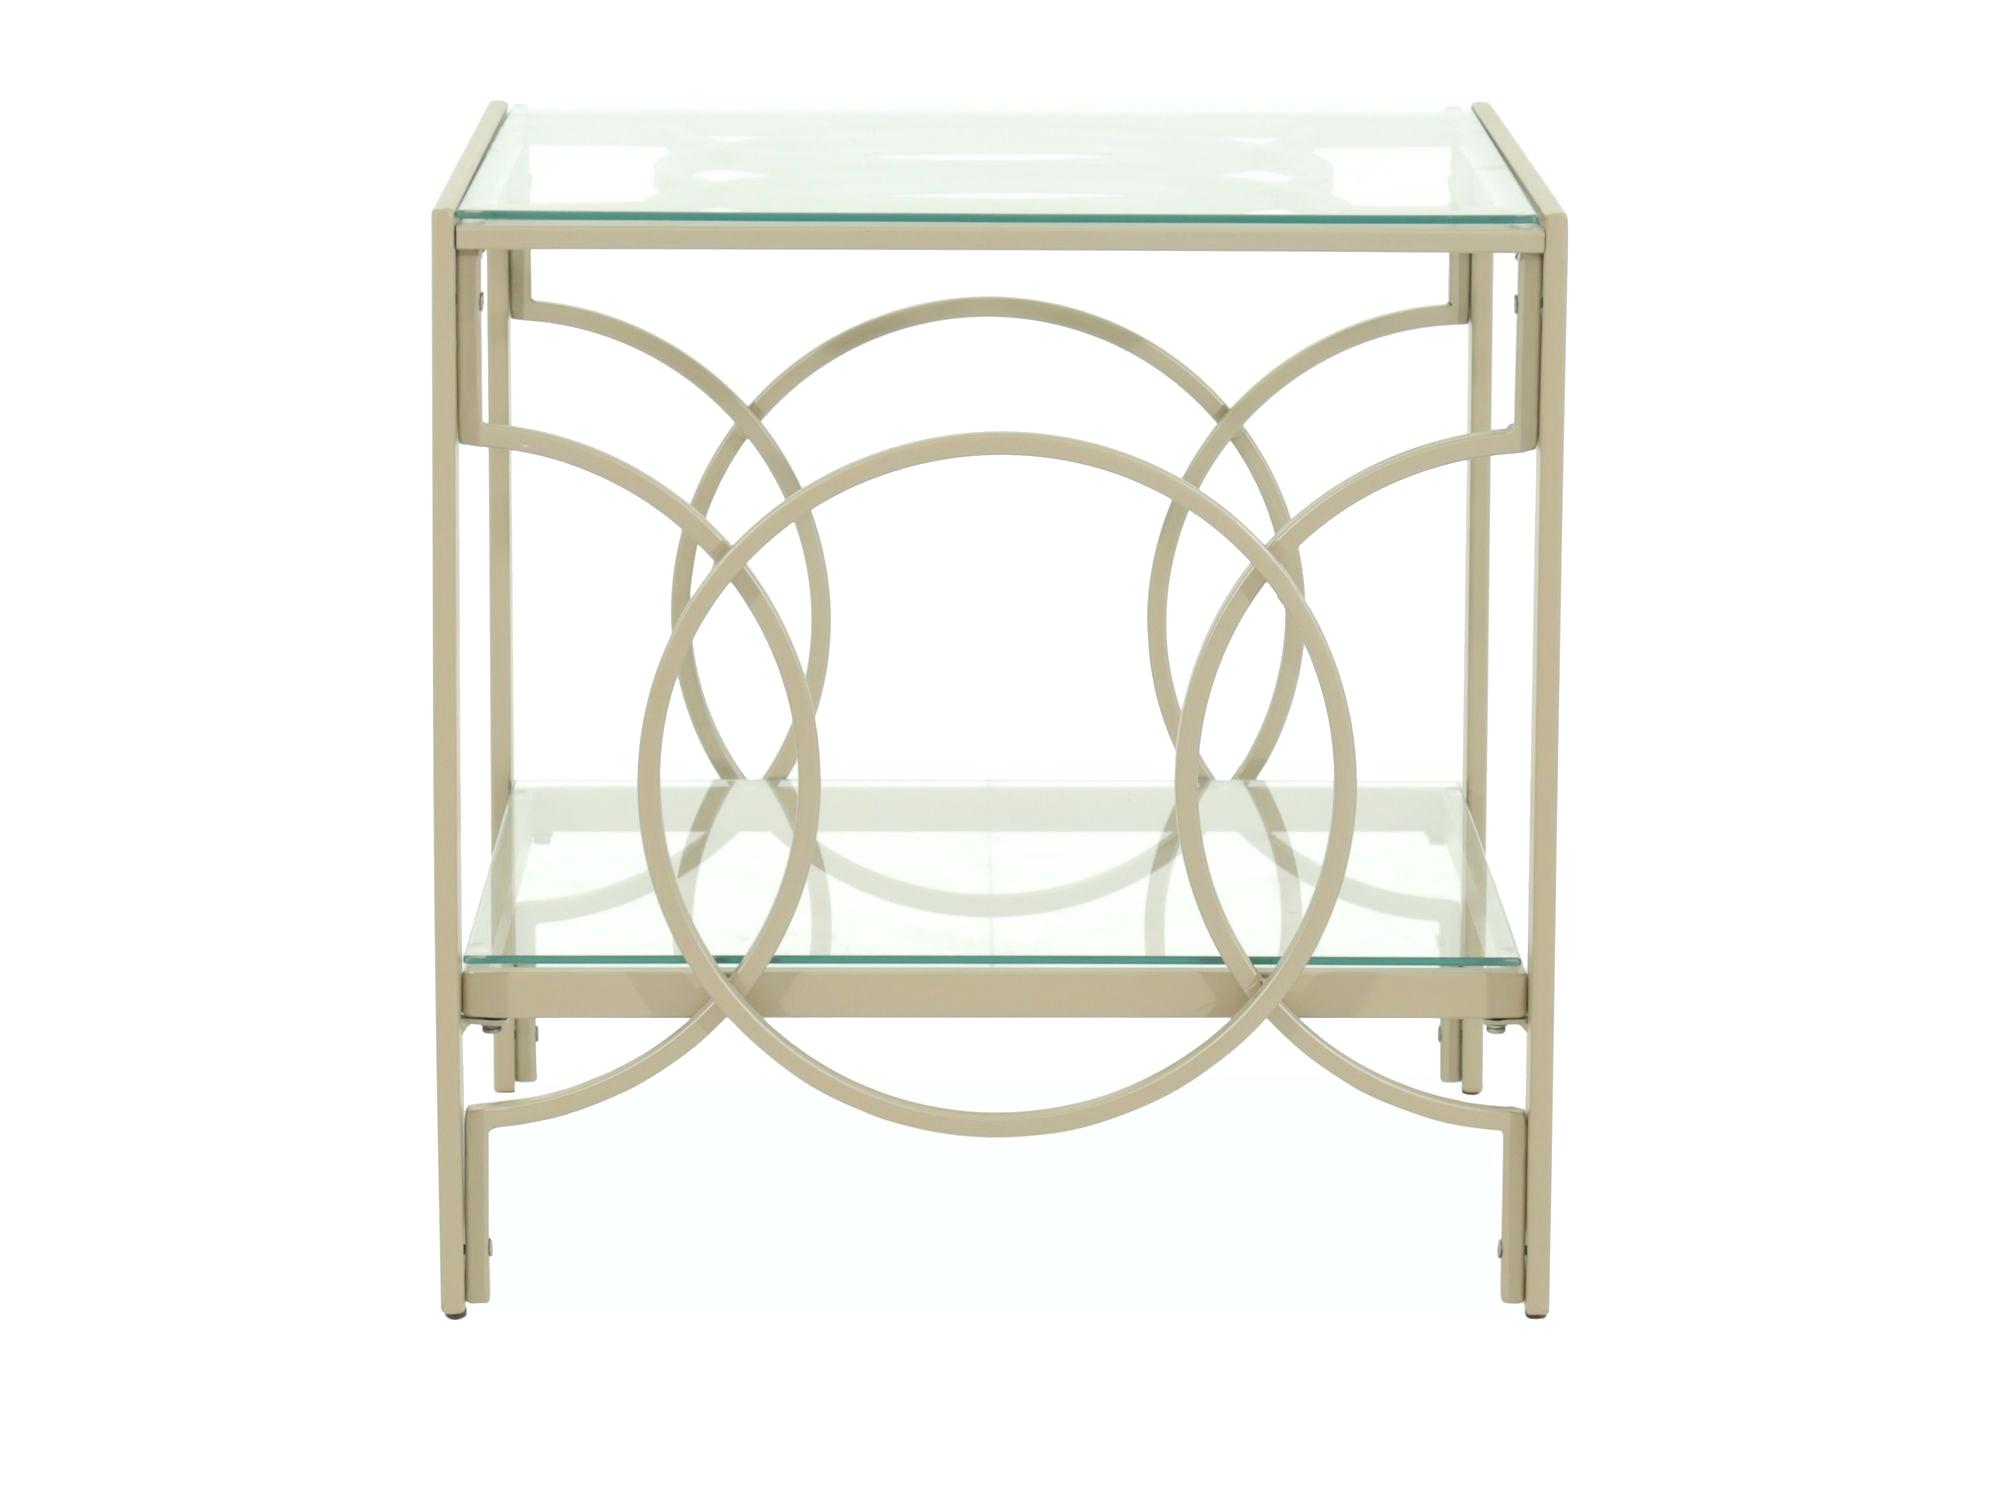 gold end tables with glass top side table kwimbo info decorative for living room mosaic garden furniture round marble coffee used west elm bathroom vanities high quality kitchen